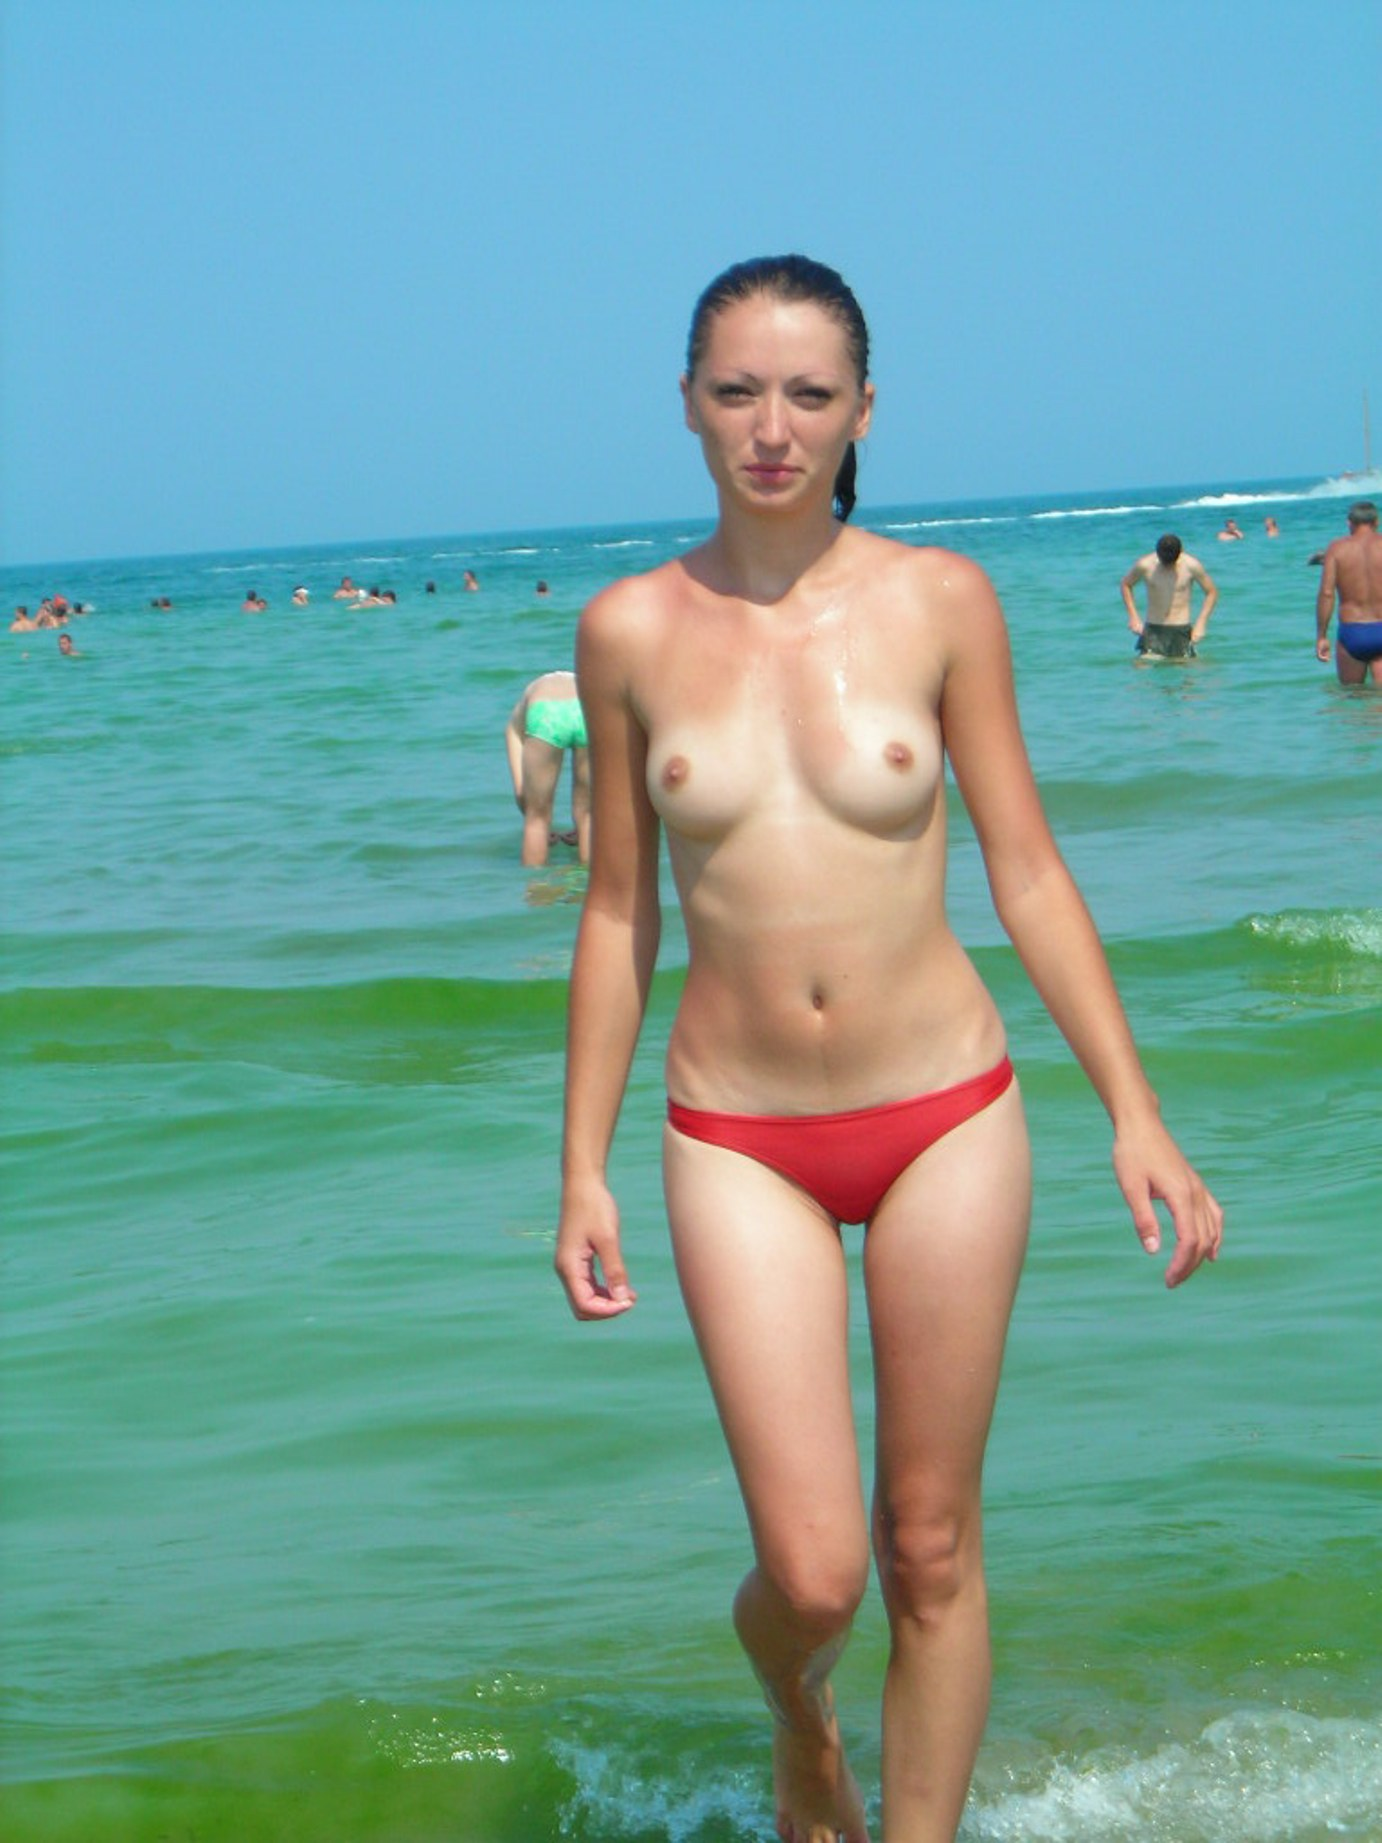 Remarkable, Nude beach babe fuck can recommend